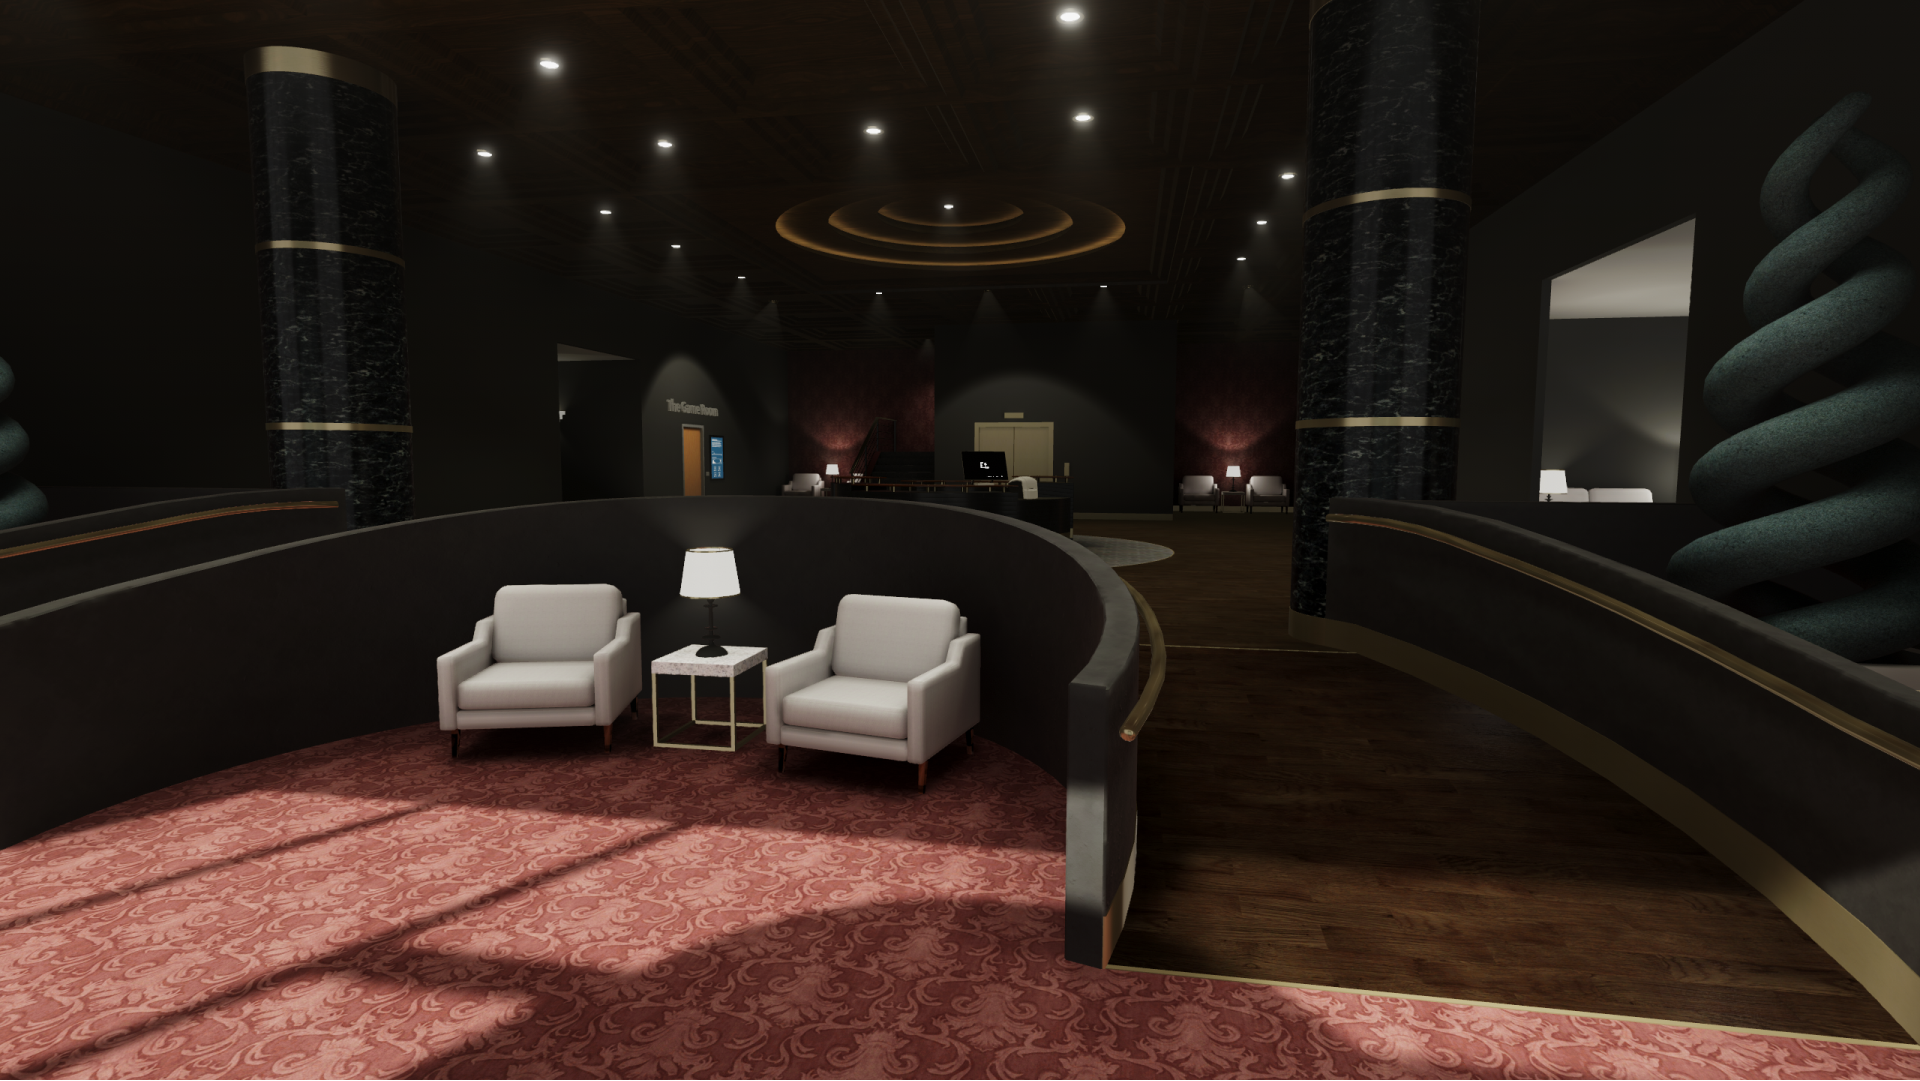 A view of the lobby inside the headquarters of Egression, Inc.